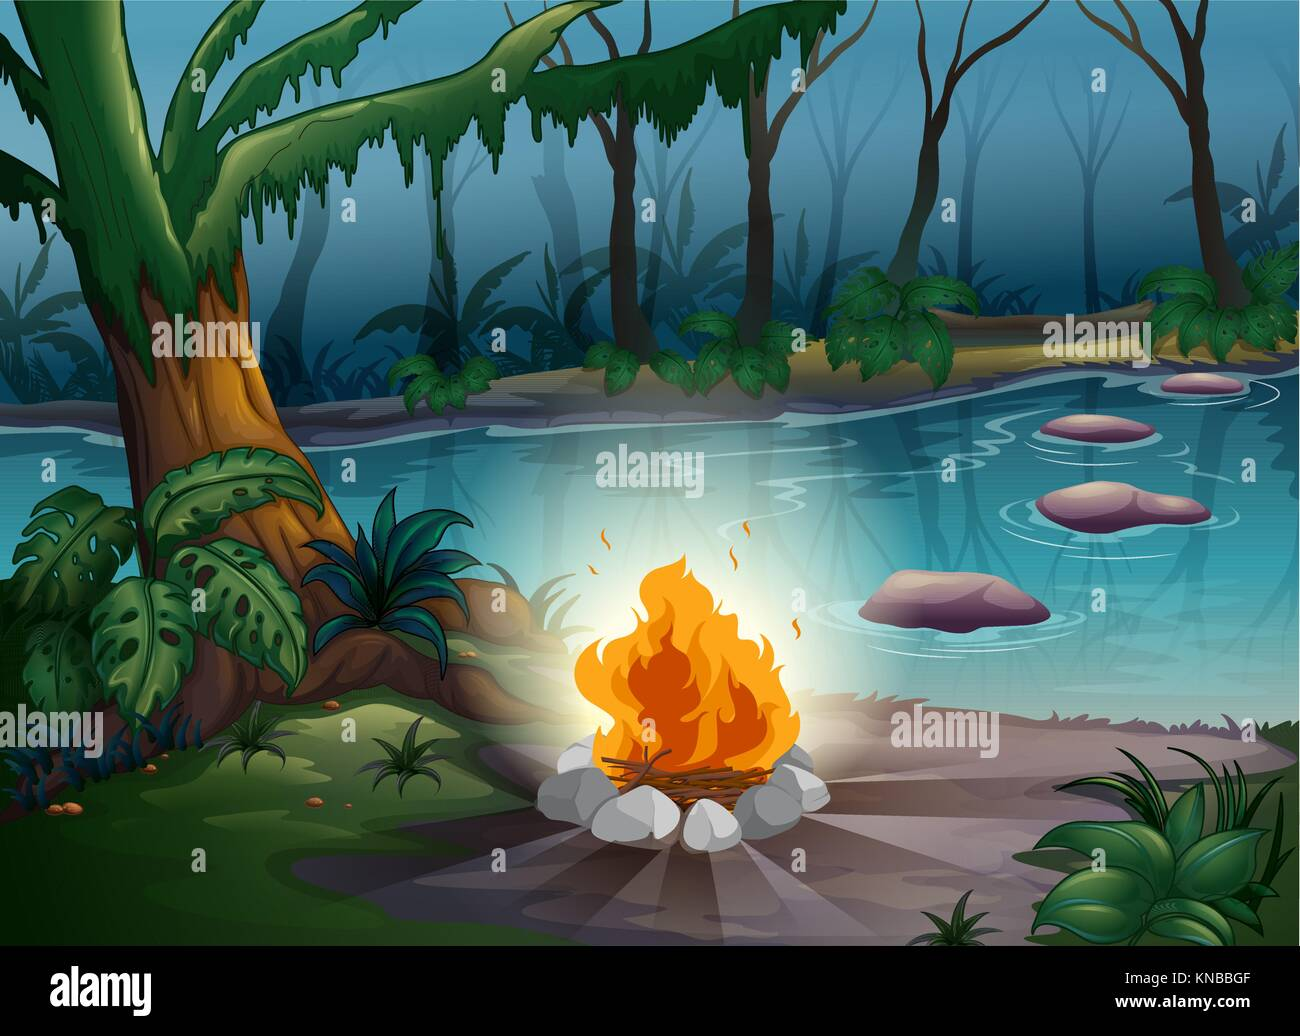 illustration of a camp fire in a beautiful nature - Stock Vector